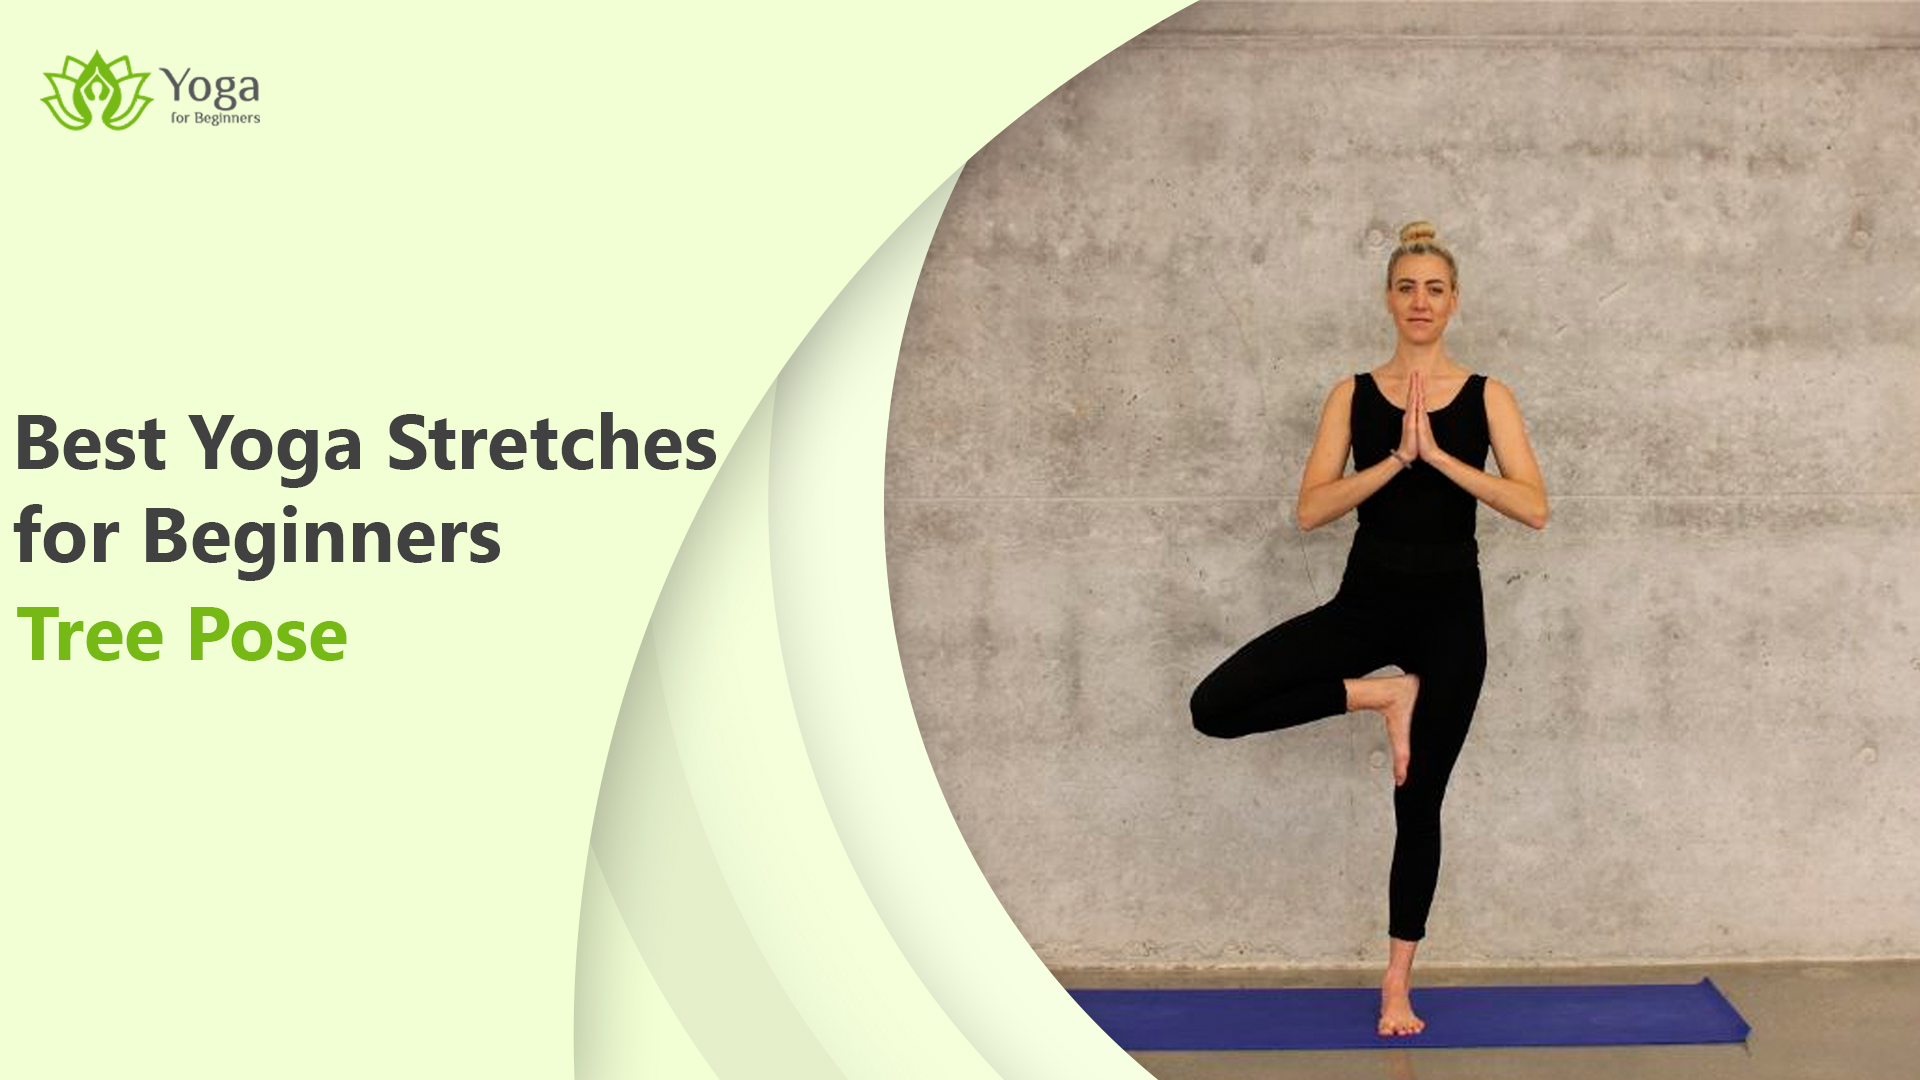 Tree pose: Yoga stretch for beginners